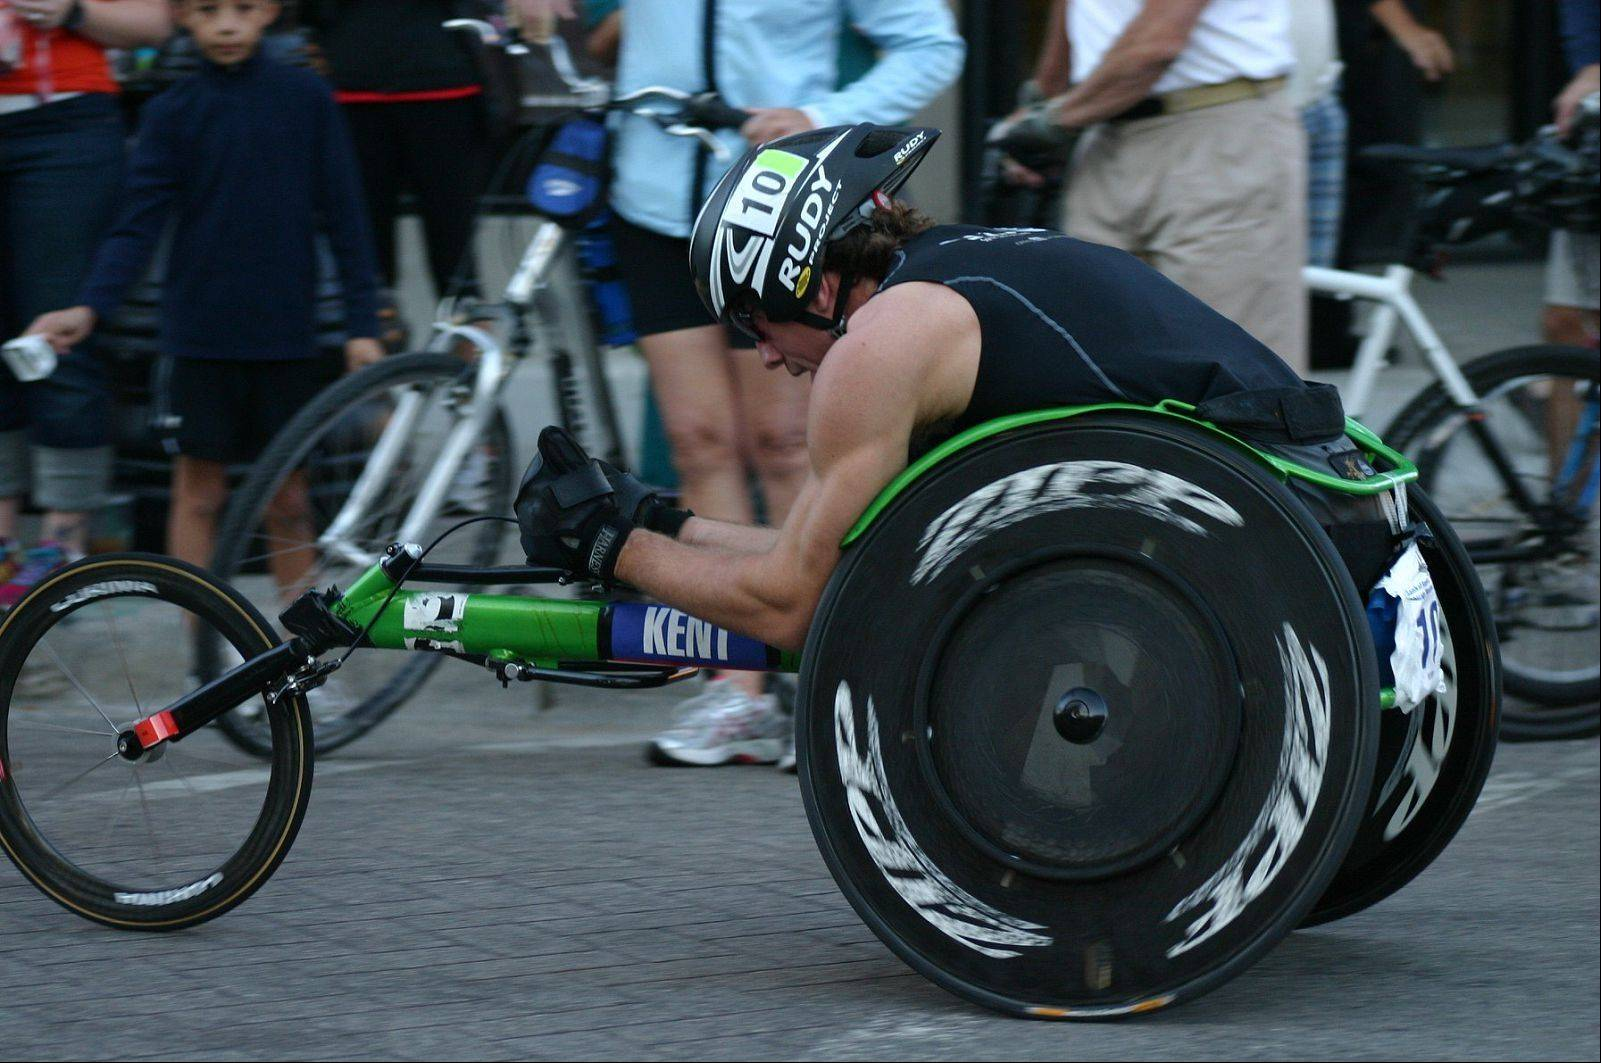 Geoff Kent, 34, races in a previous Chicago Marathon to raise funds for Spinal Cord Injury Sucks, which he started after being paralyzed from the chest down in a 2007 downhill skiing accident.